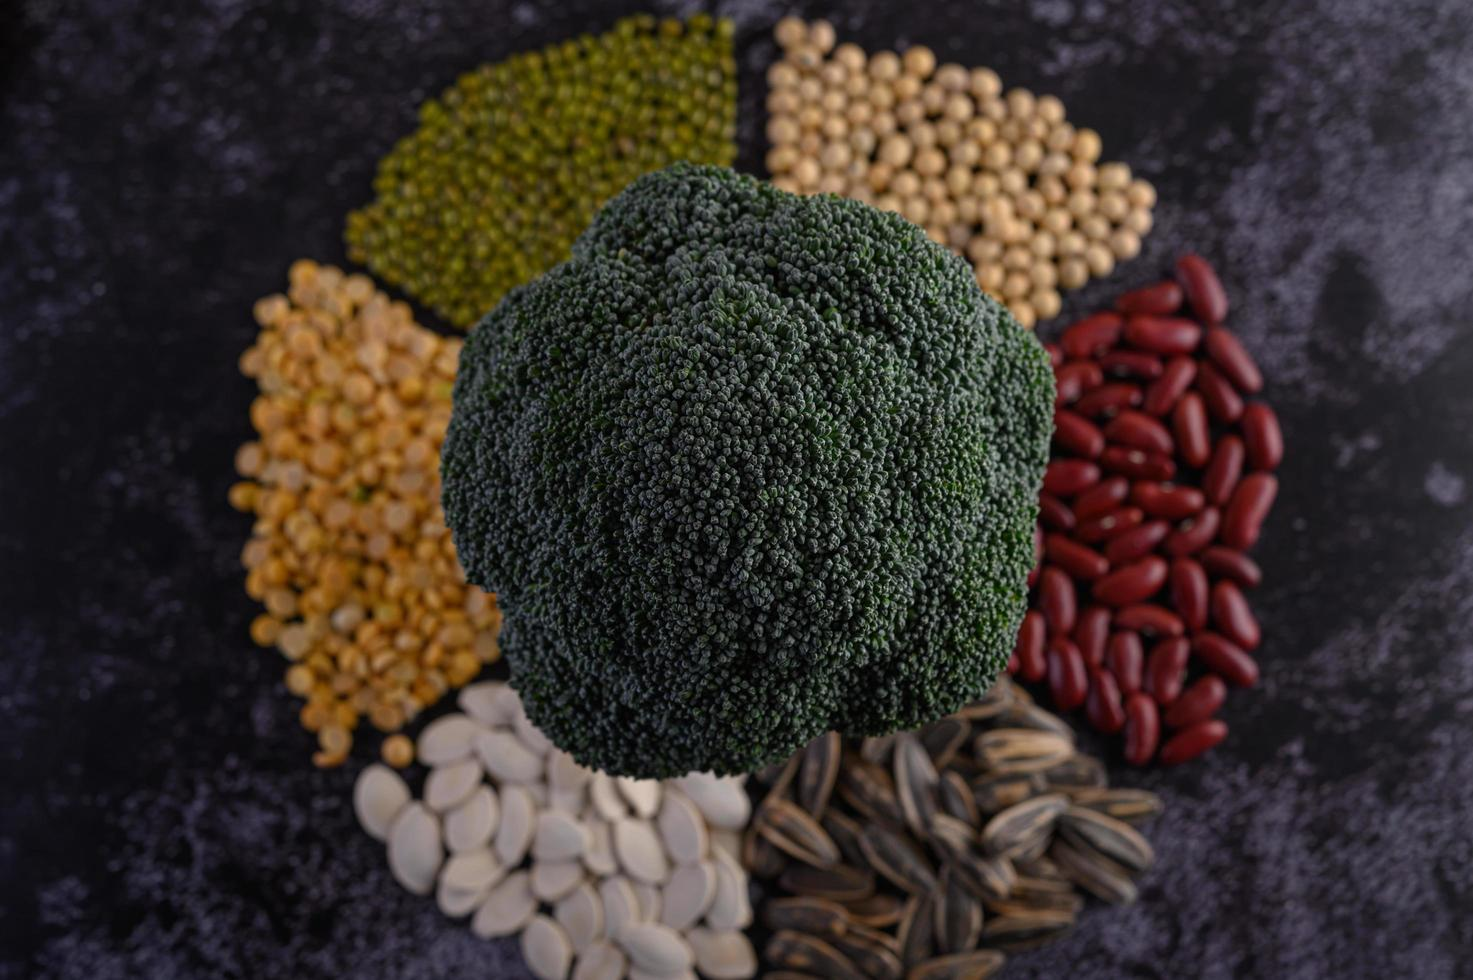 Legumes with broccoli on a black background photo